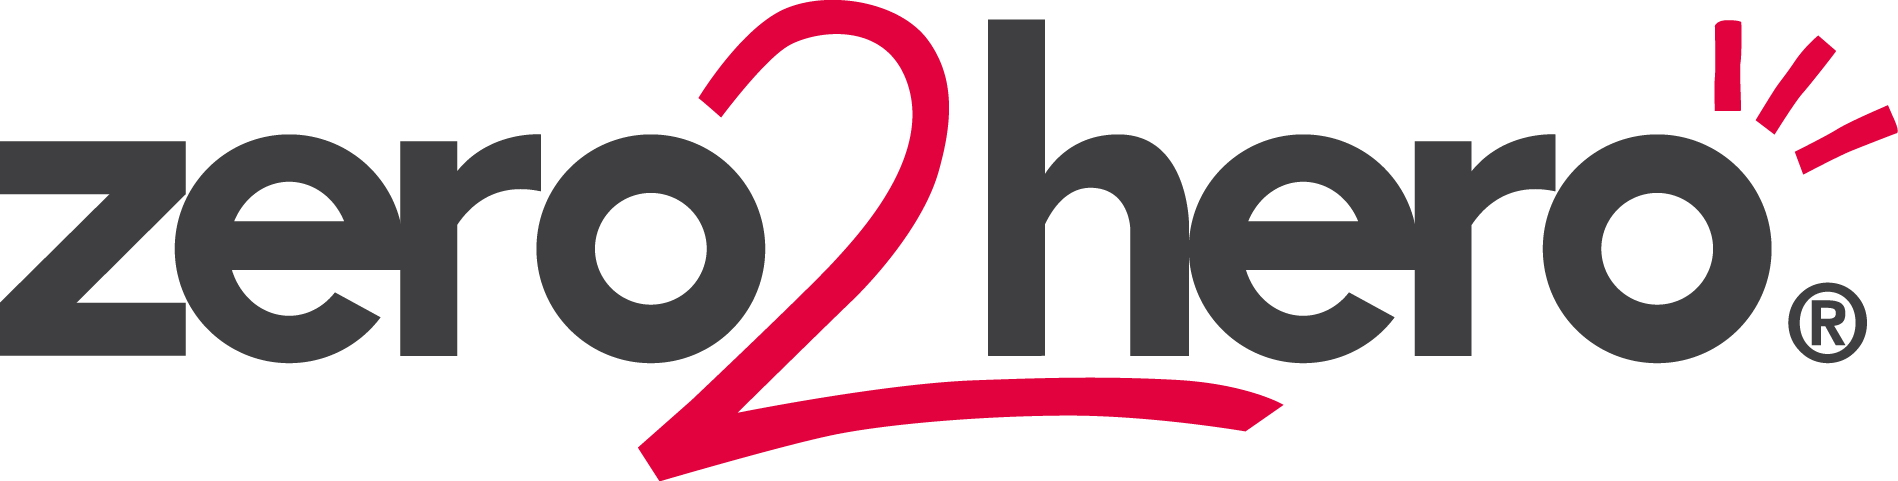 logo-with-trademark.png